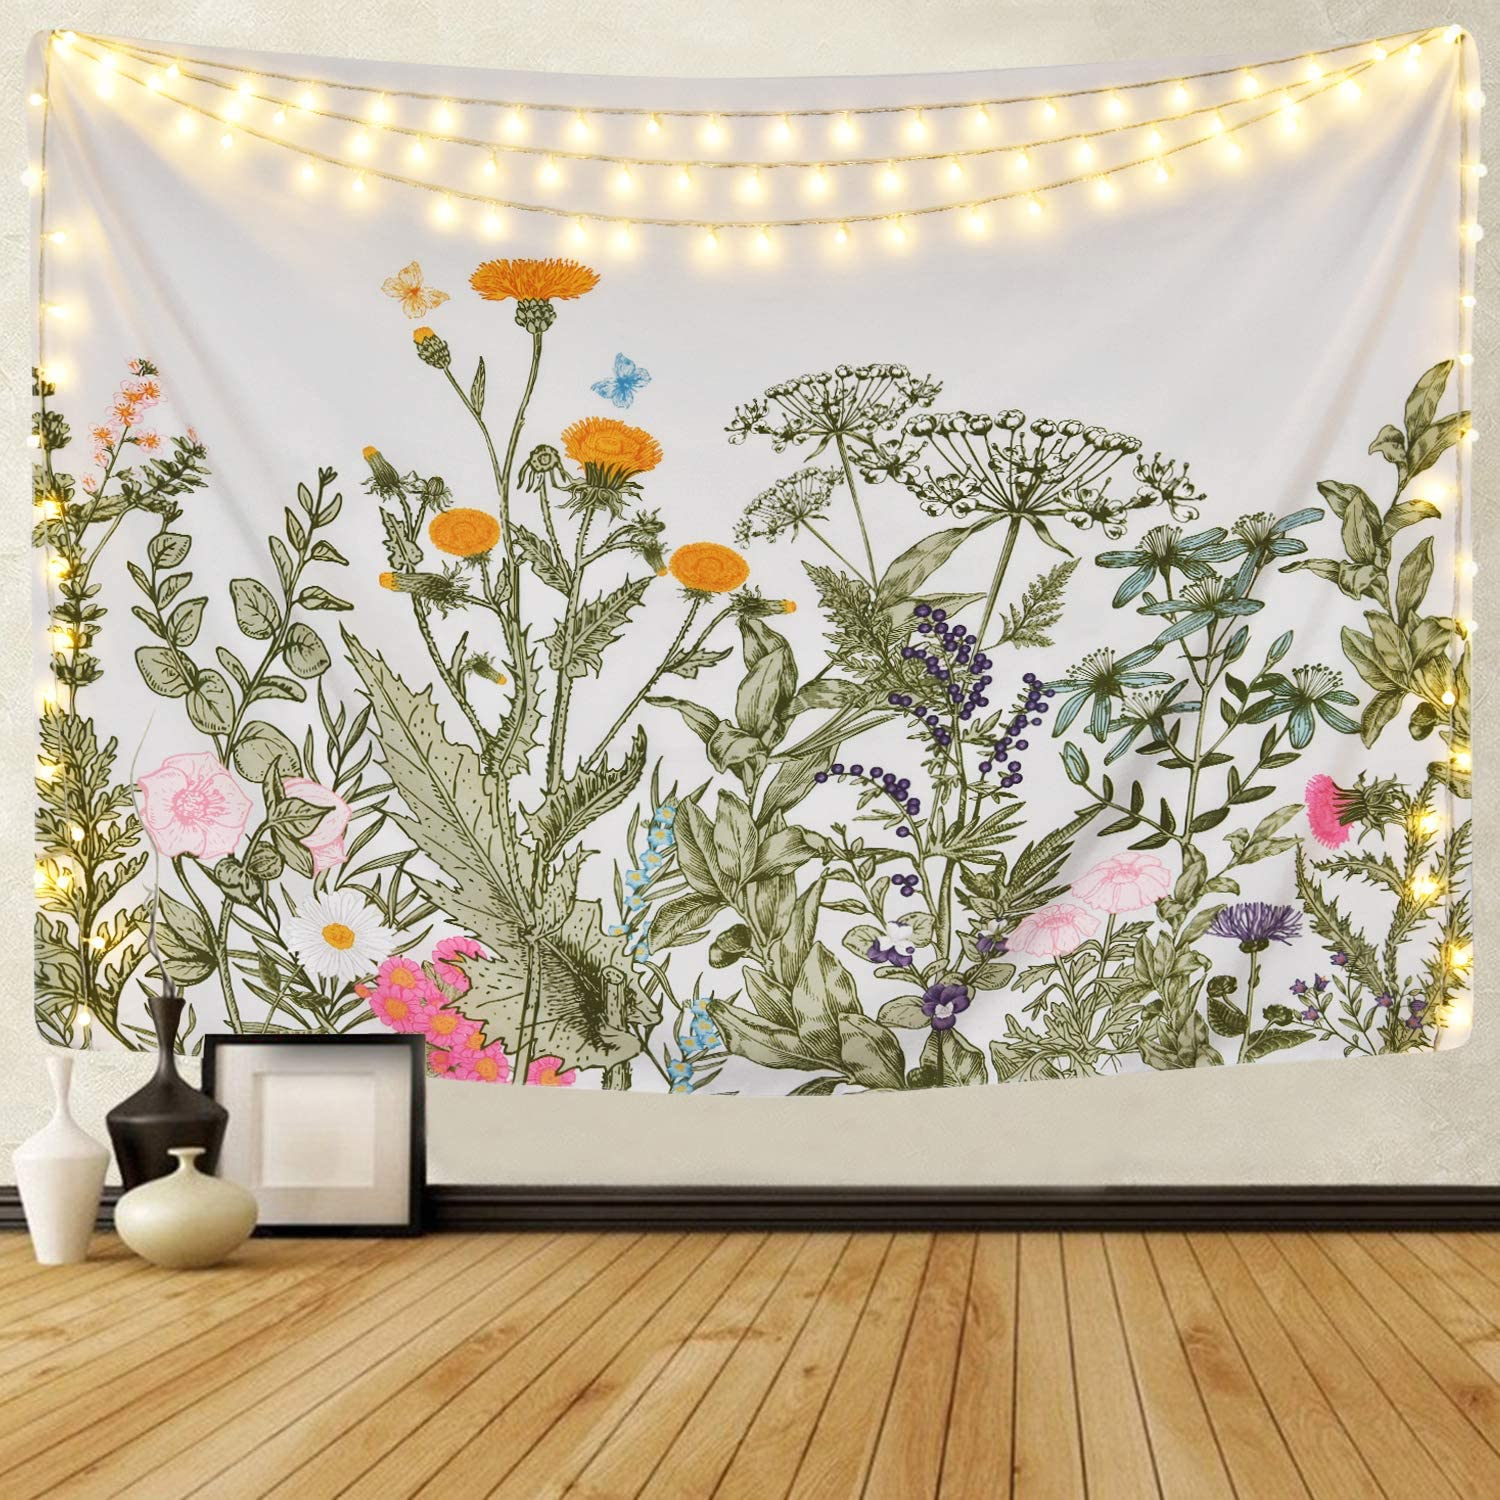 Sevenstars Plants Floral Tapestry Wild Flowers Tapestry Vintage Plants Tapestry Wall Hanging Nature Scenery Tapestry for Room